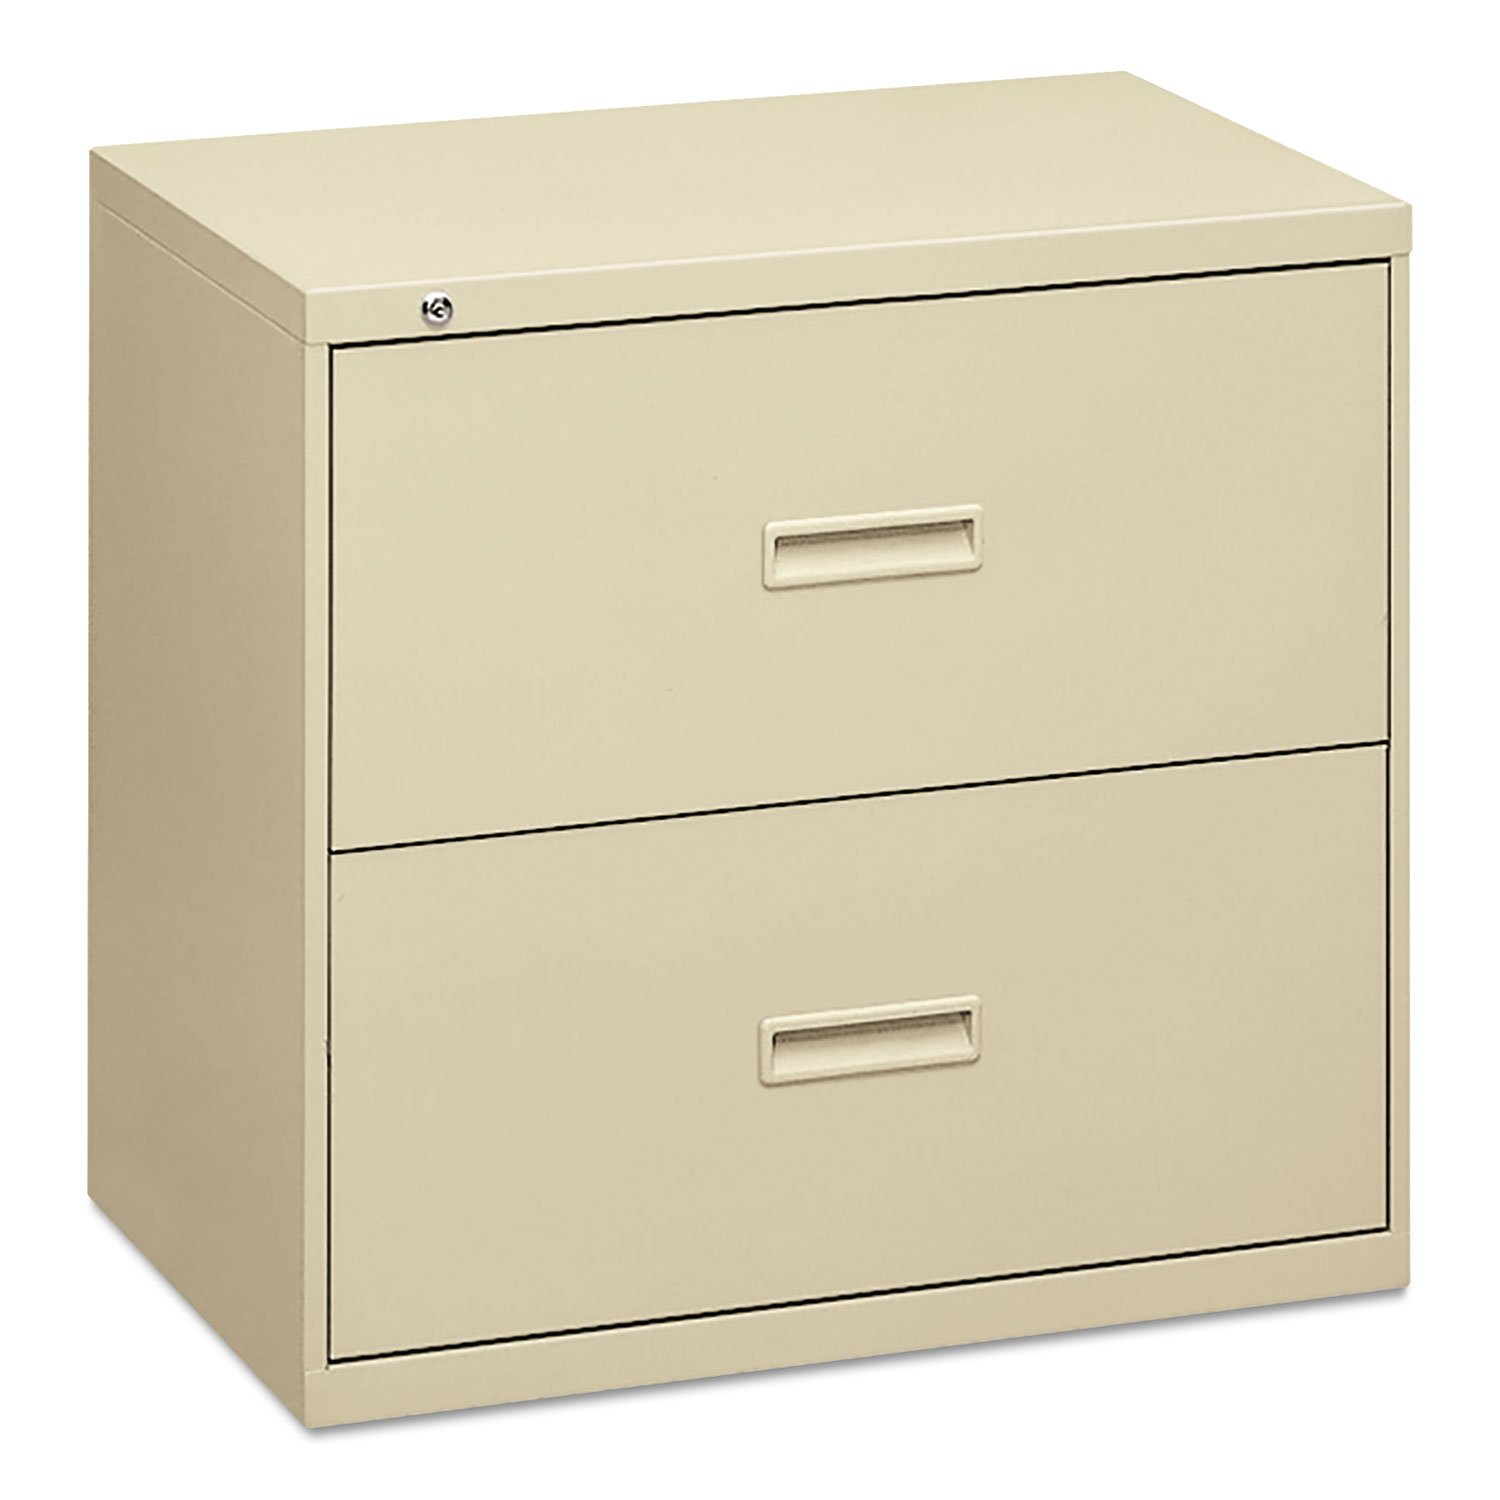 BSX482LL - 400 Series Two-Drawer Lateral File